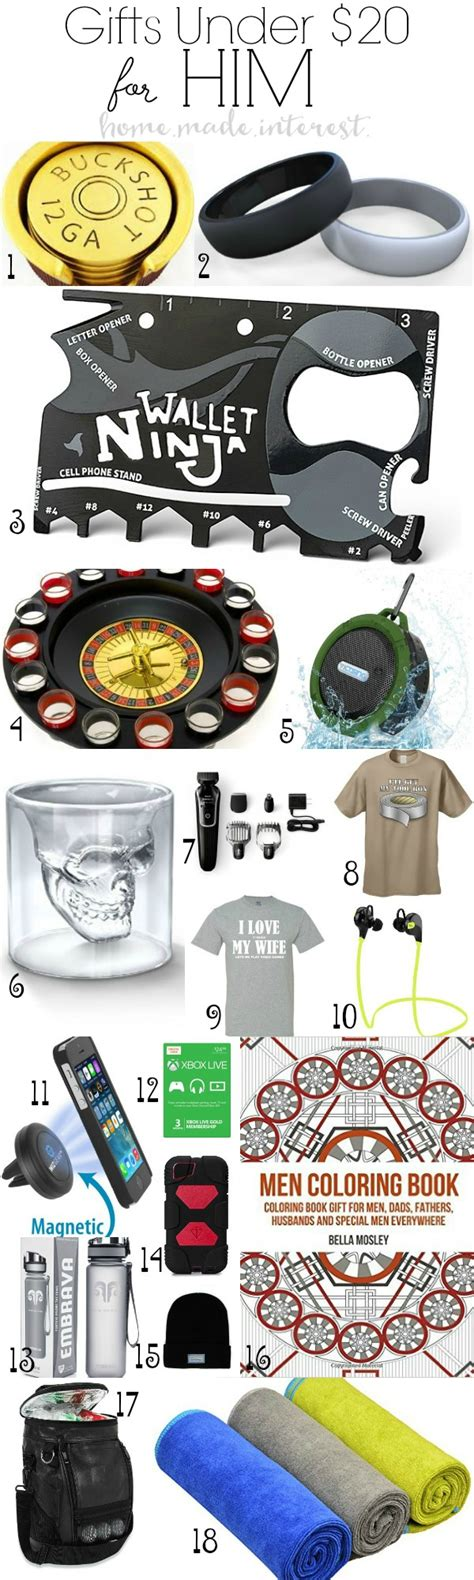 inexpensive gifts for him home made interest